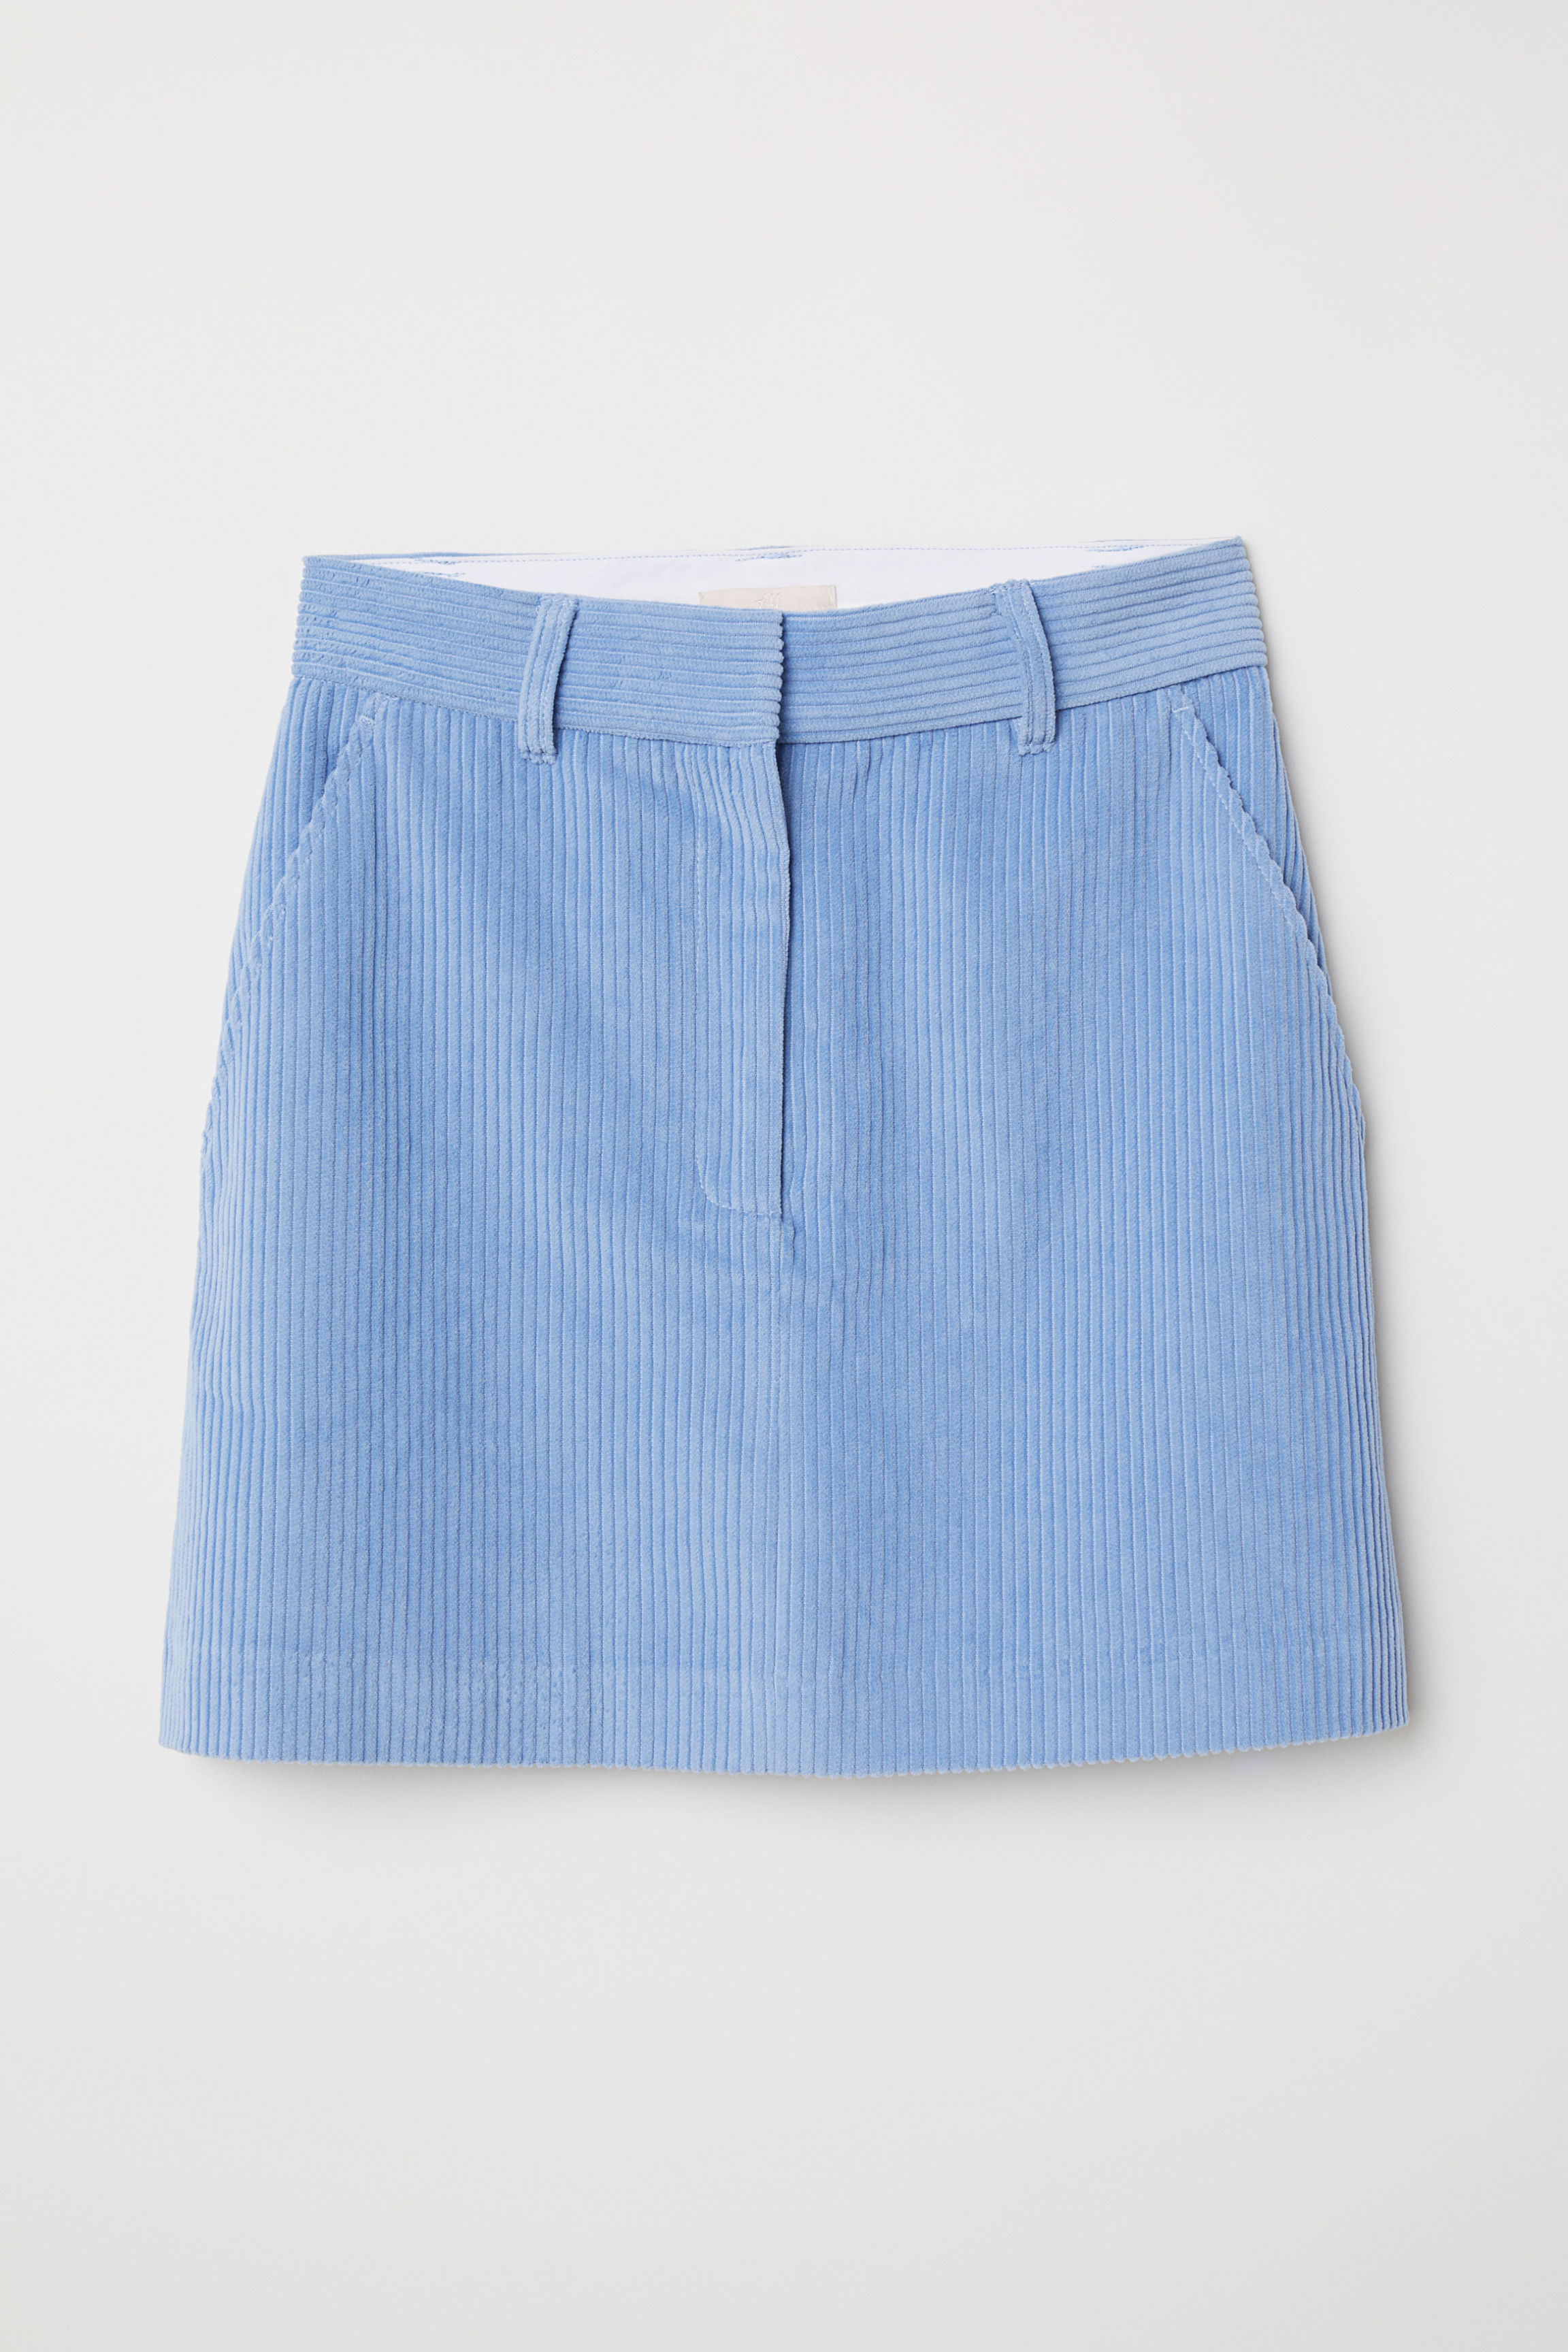 e202724b1 Short corduroy skirt - Light blue - Ladies | H&M GB